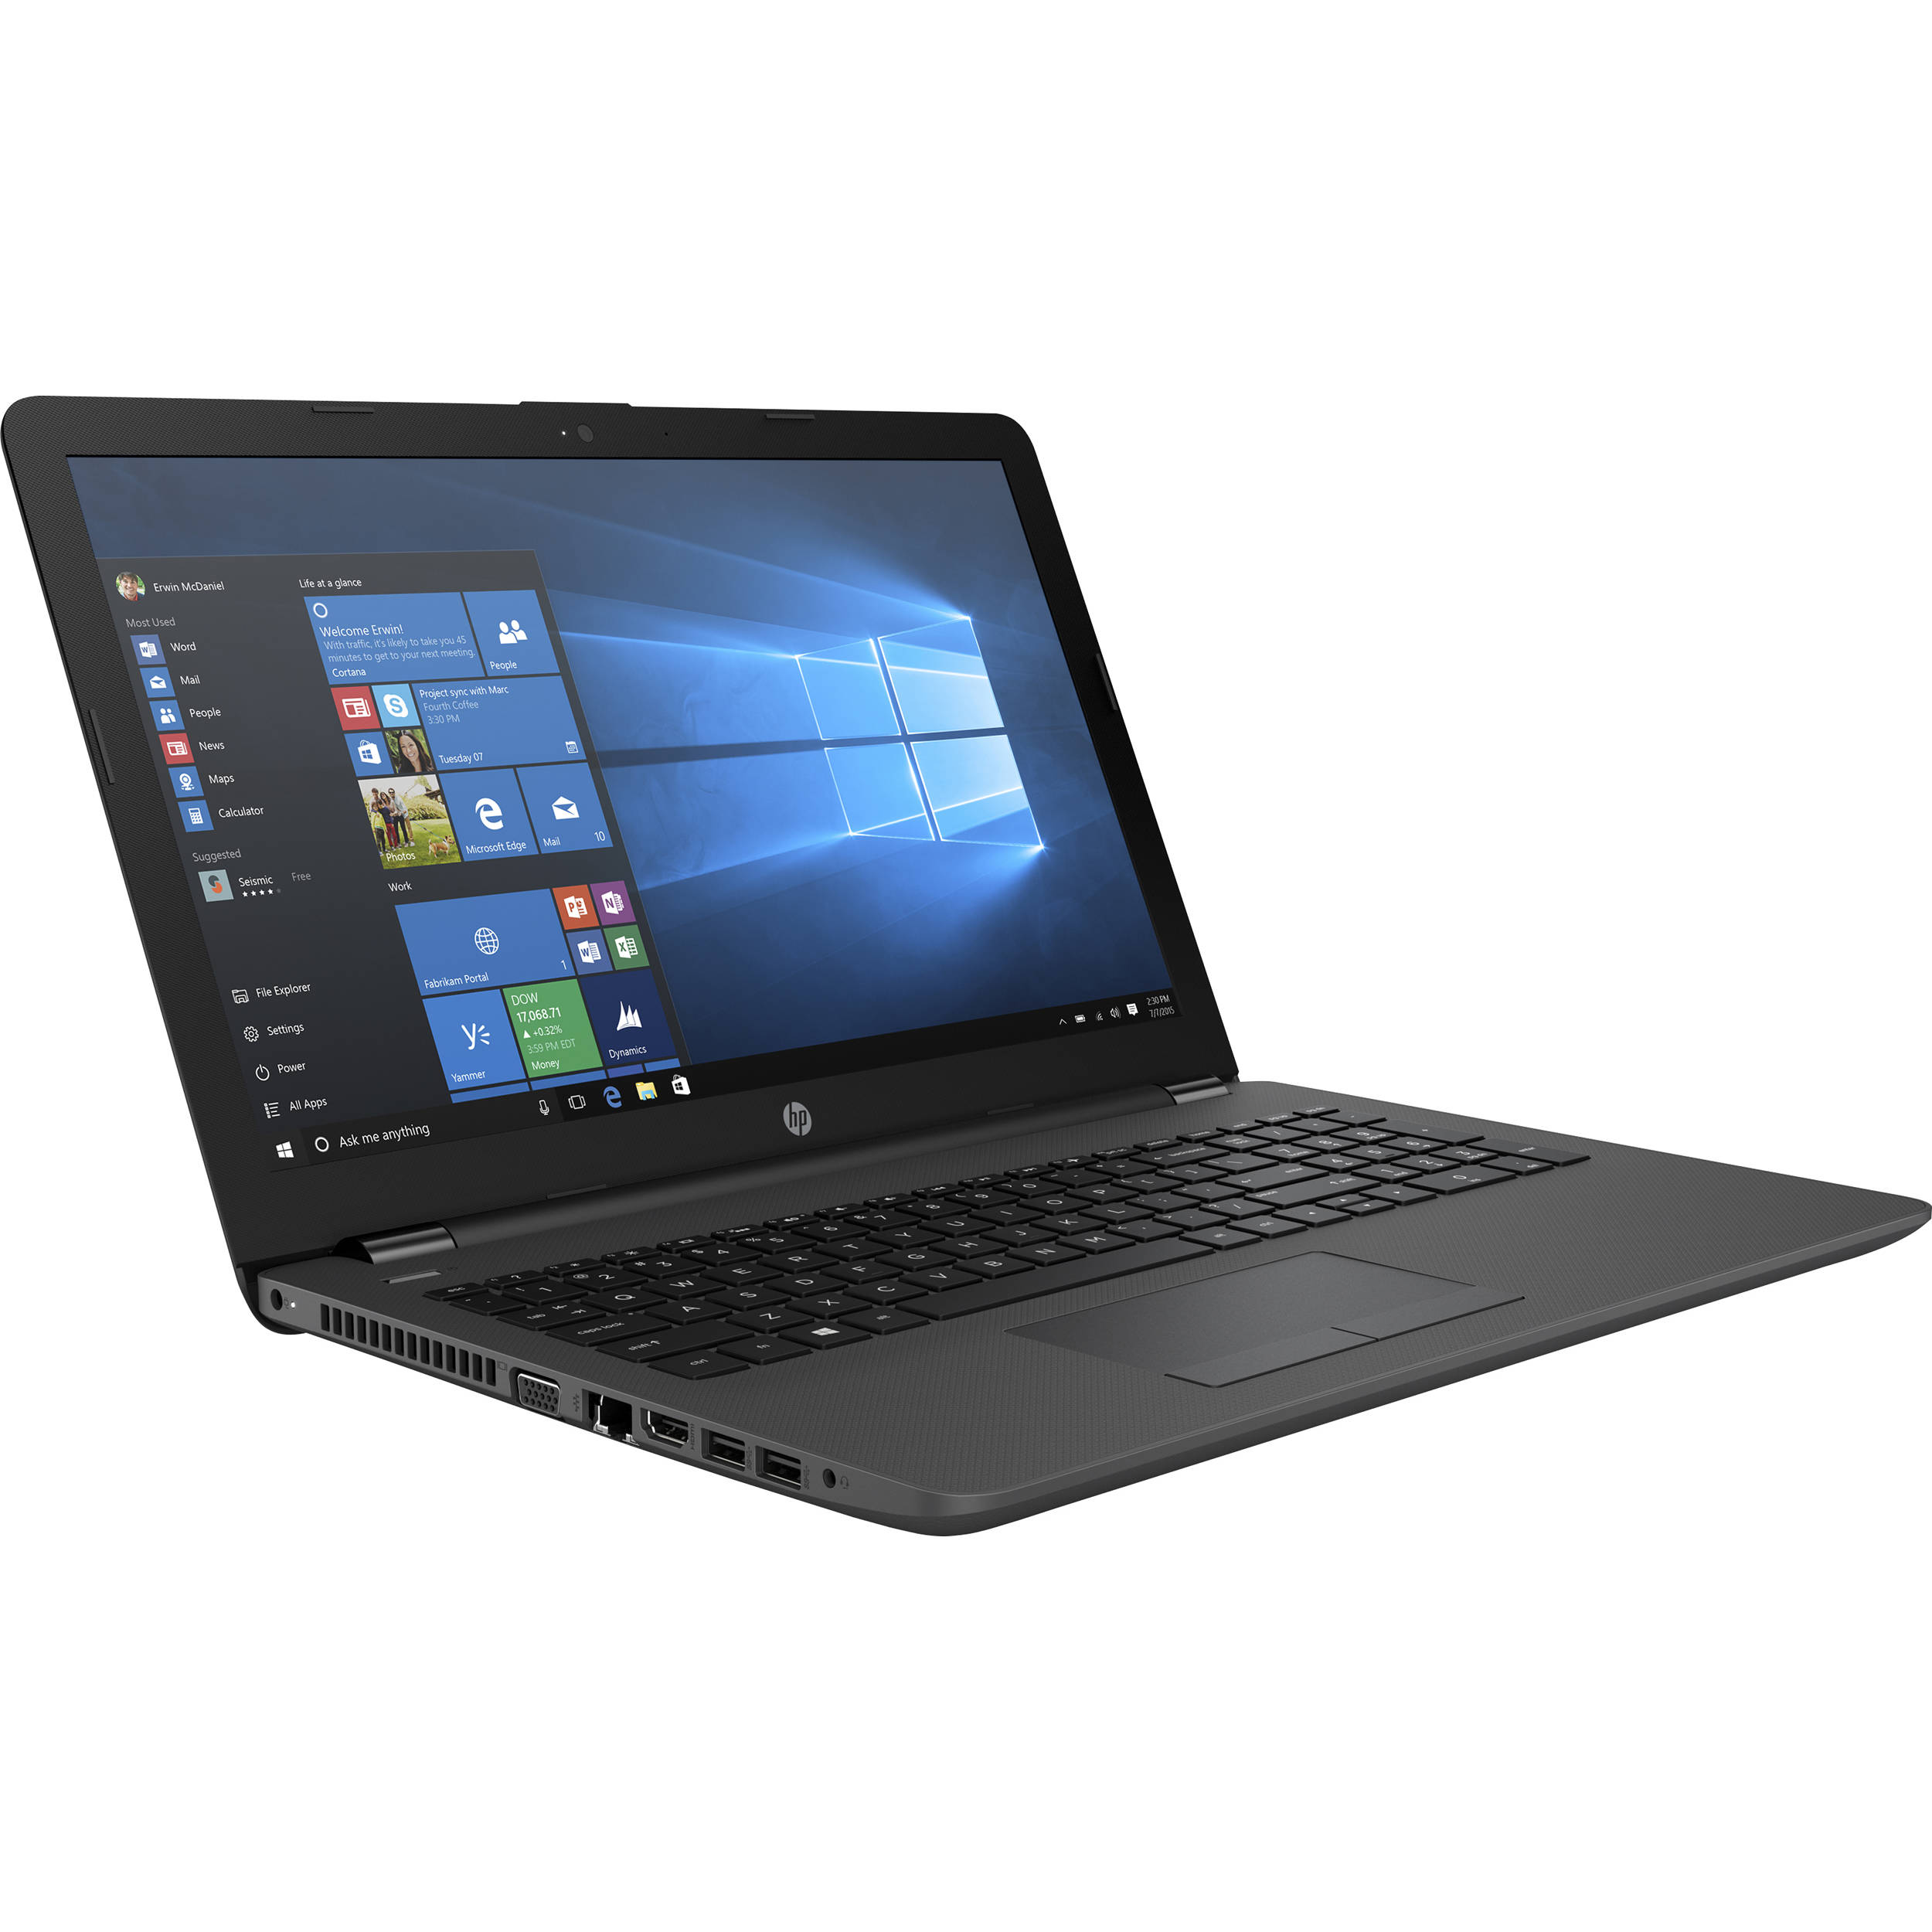 HP 250 Notebook: Features and Feedback